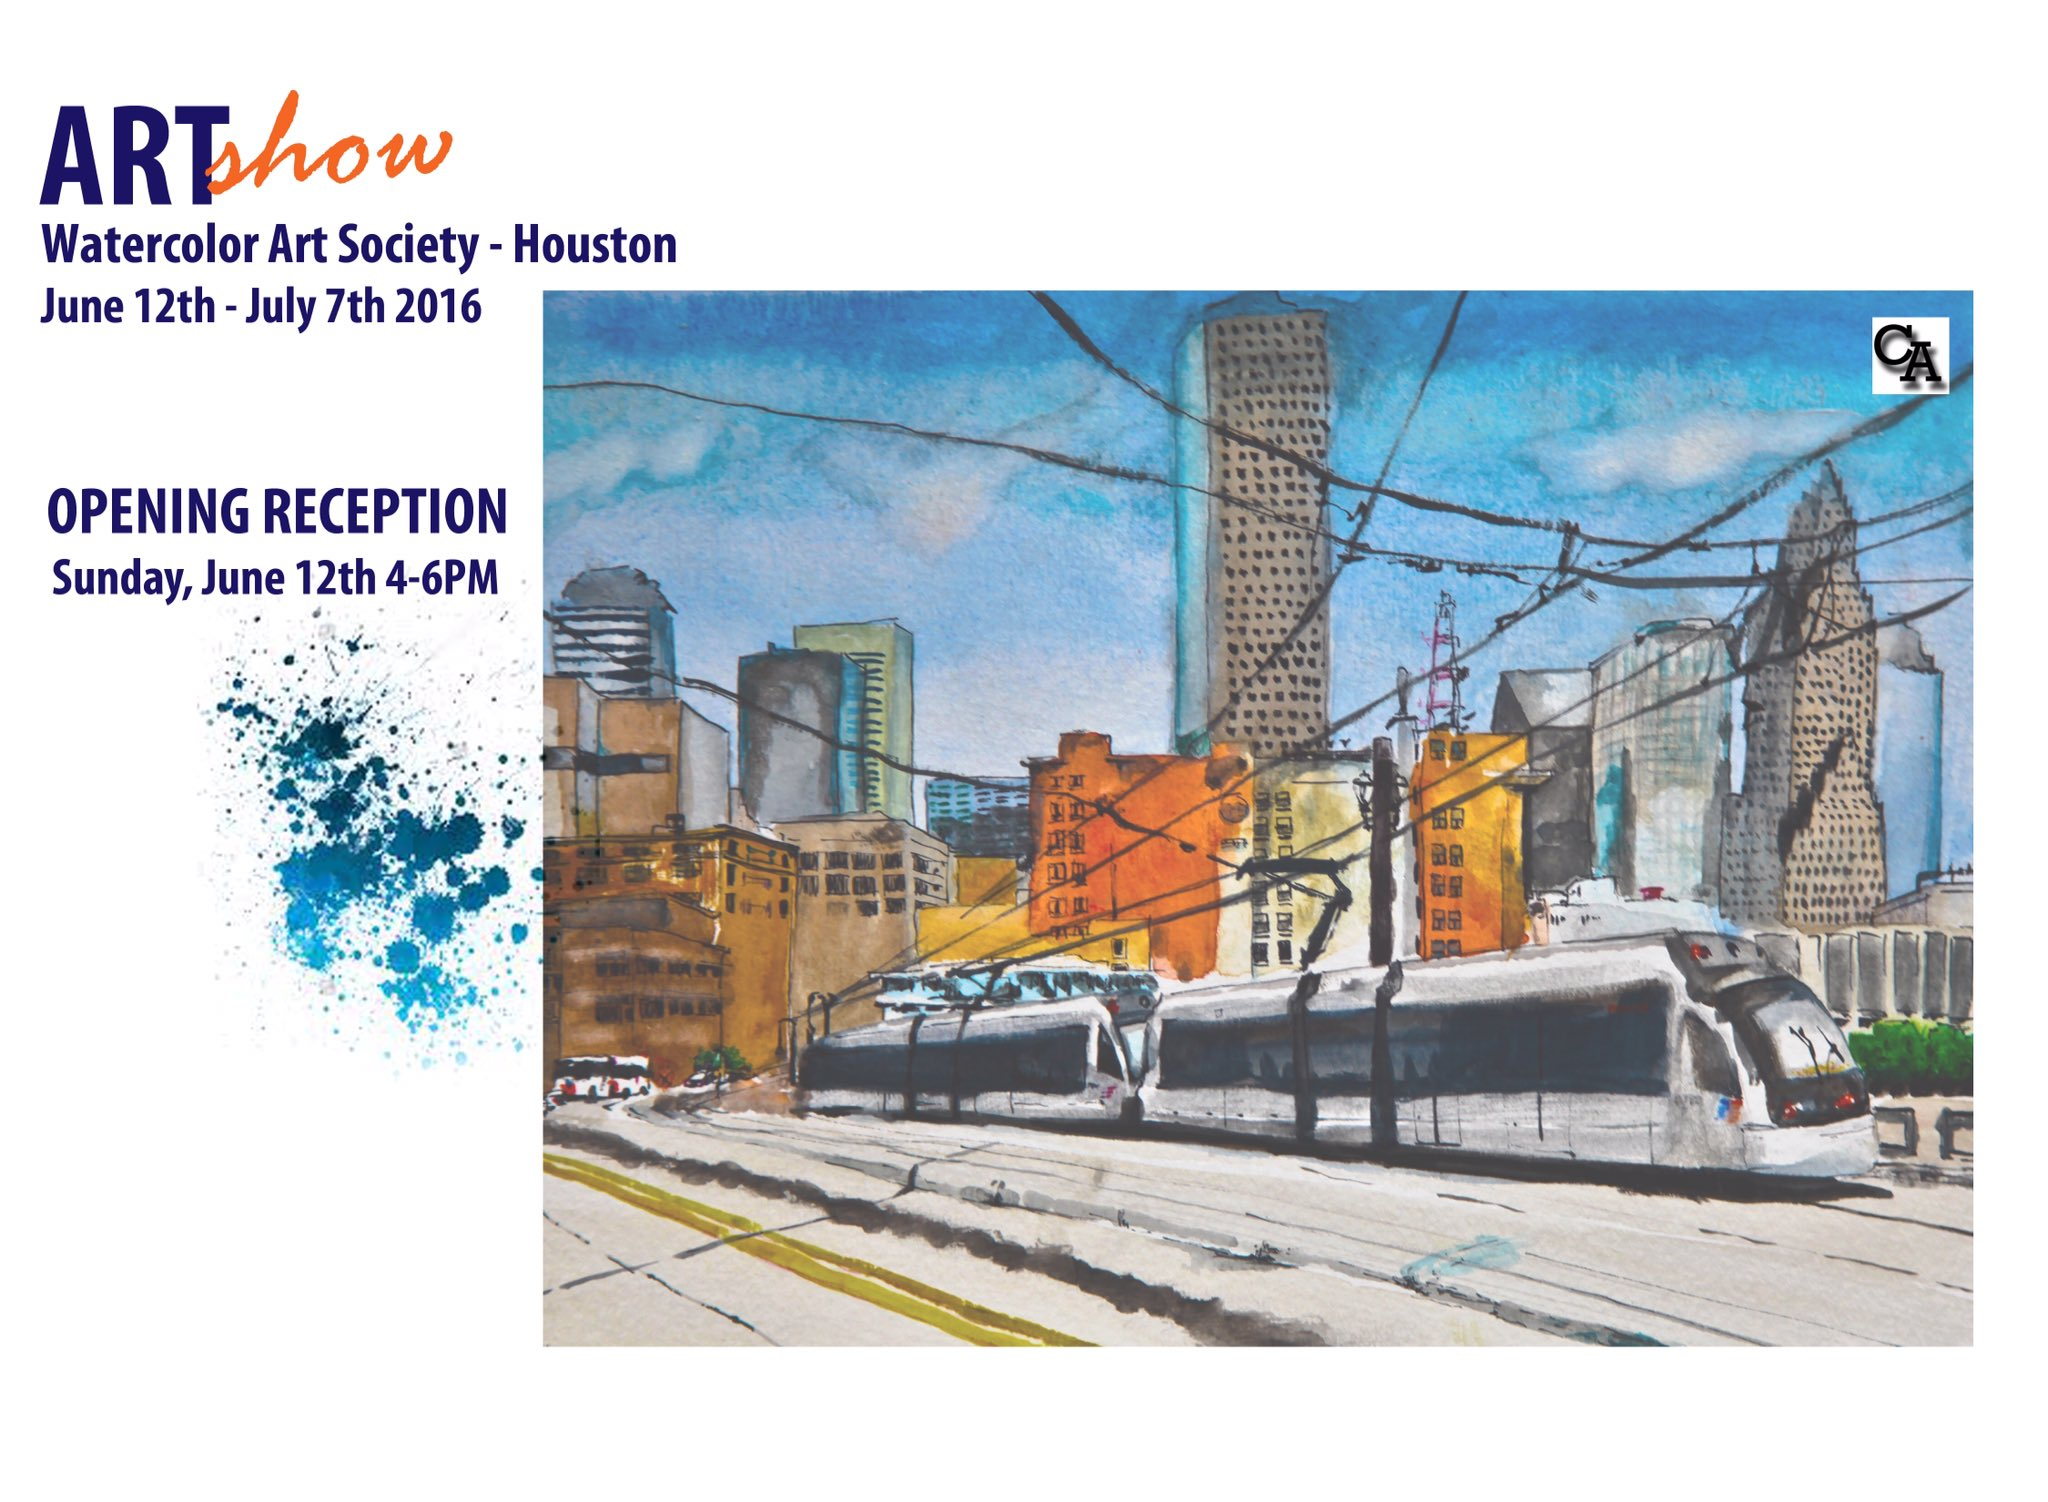 Watercolor art society houston tx - Cedric Akue On Twitter Come Check Out My Work During An Exhibition Presented By Wash At 1601 W Alabama St Houston Texas 77006 Https T Co 8wgomoyvfk